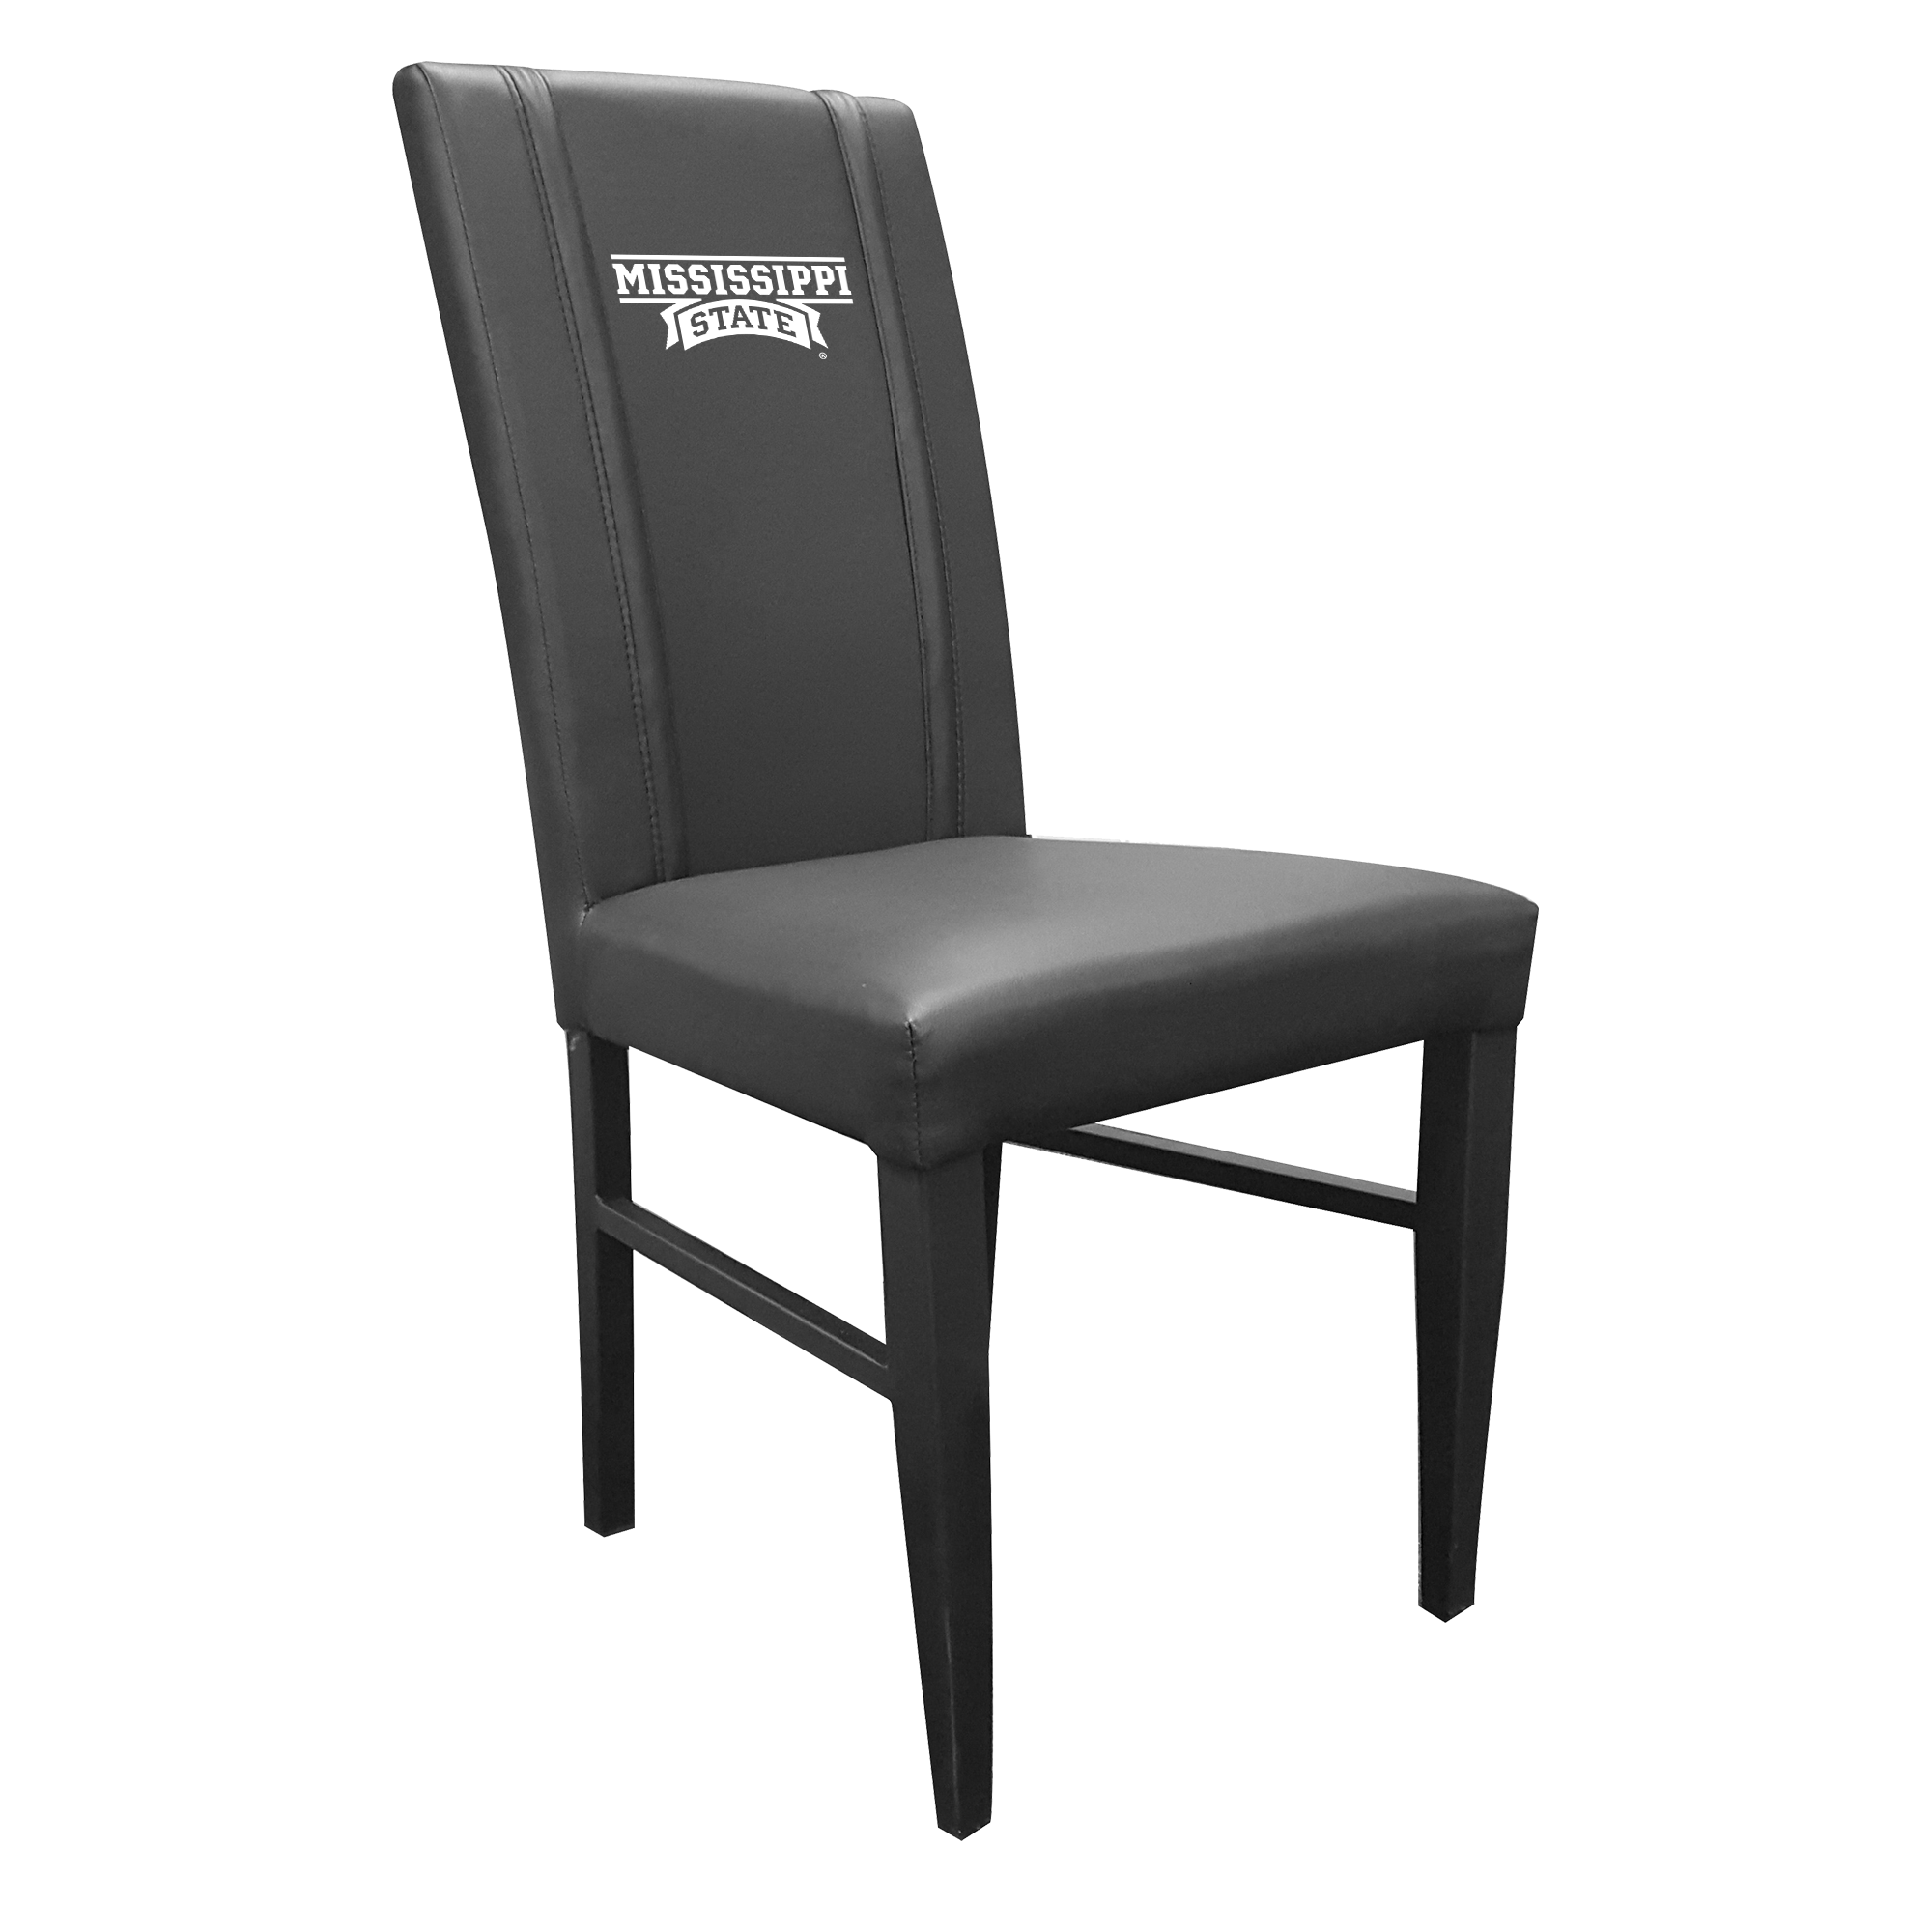 Side Chair 2000 with Mississippi State Alternate